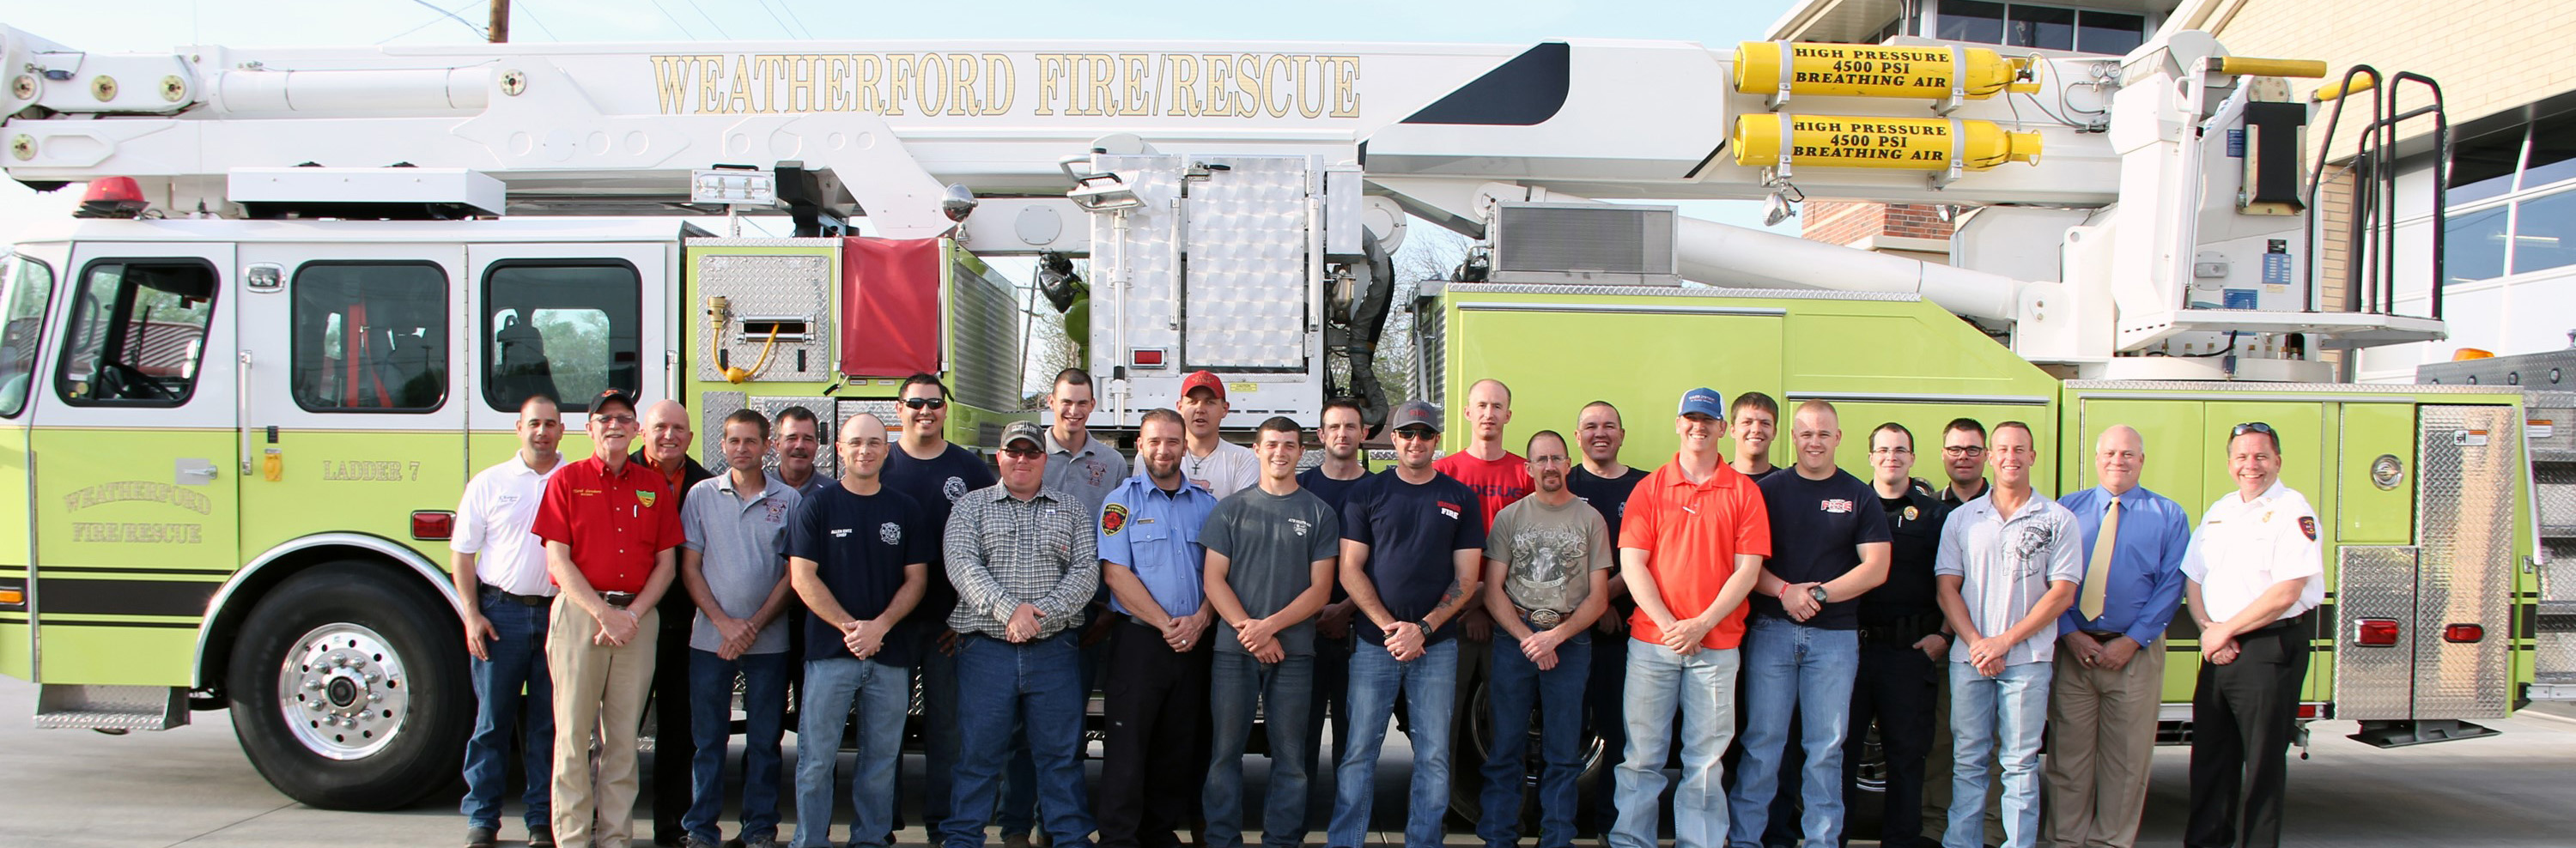 picture of the whole fire department in casual clothing by one of the fire trucks